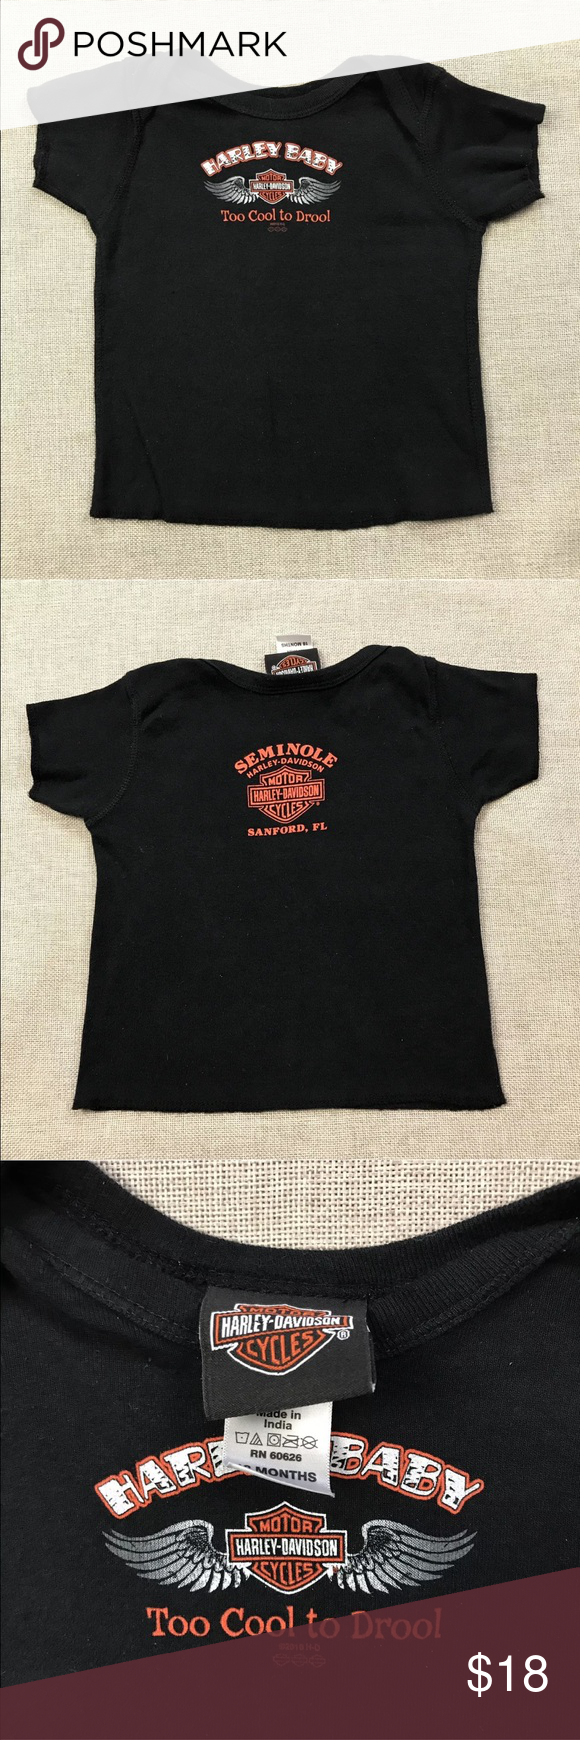 """NWOT Harley Davidson Baby T-Shirt Harley Davidson Baby T-Shirt  Baby's Size: 18M  Very Good Condition! No flaws.  100% Cotton  Measurements lying flat: Shoulder to Shoulder 9"""", Armpit to Armpit 11"""", Sleeve's Length 3"""", Length 12"""".  Please, review pictures. You will get the item shown. Smoke & pet free home.                                                                           ❤️ Save, Save , Save! ❤️ 💵💰 30% off 3+ Bundles 💰💵 Harley-Davidson Shirts & Tops Tees - Short Sleeve"""